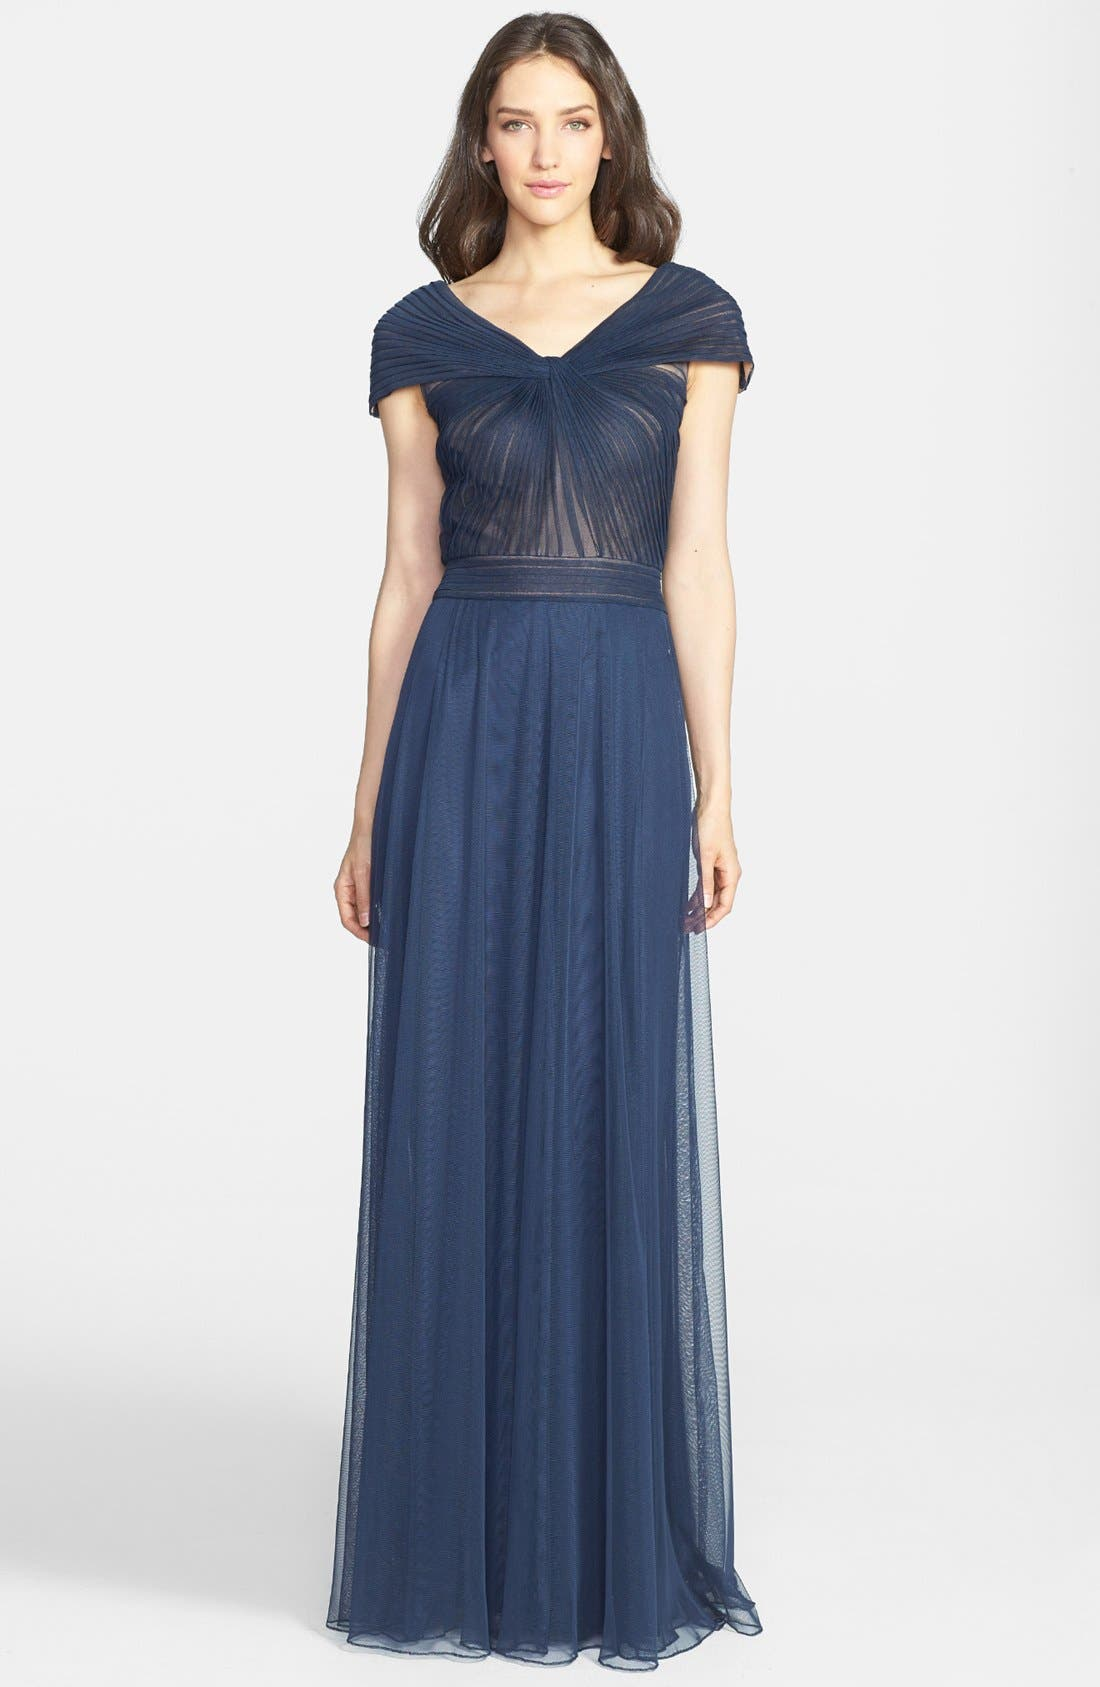 Portrait Collar Pleated Mesh Gown,                             Main thumbnail 1, color,                             Navy/ Navy